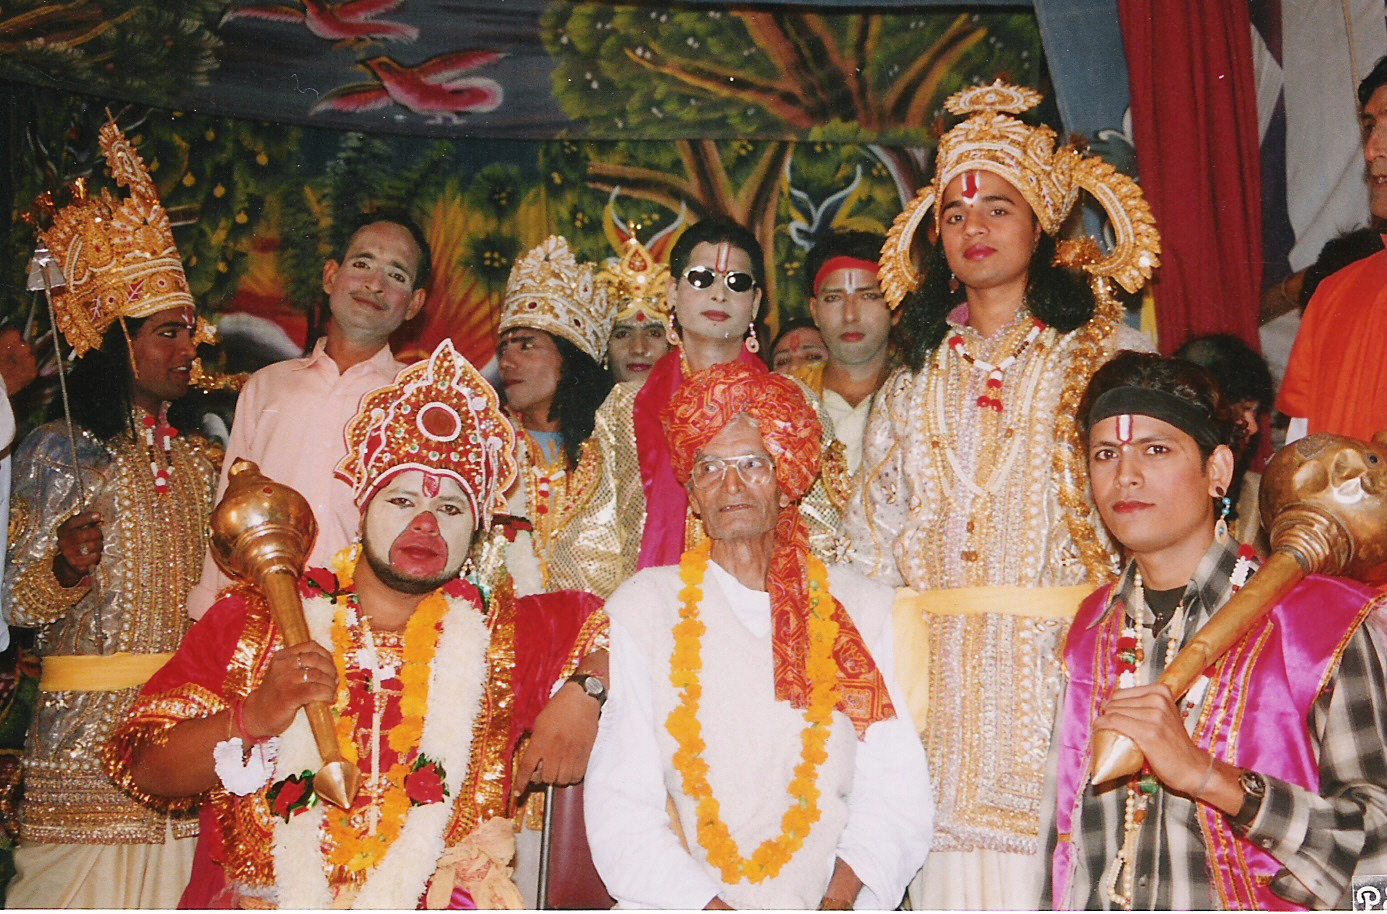 ramayana and ram lila The foundation for many of india's performing arts traditions can be traced to the natya shastra, a sanskrit treatise,  ramayana enactment at ram lila.